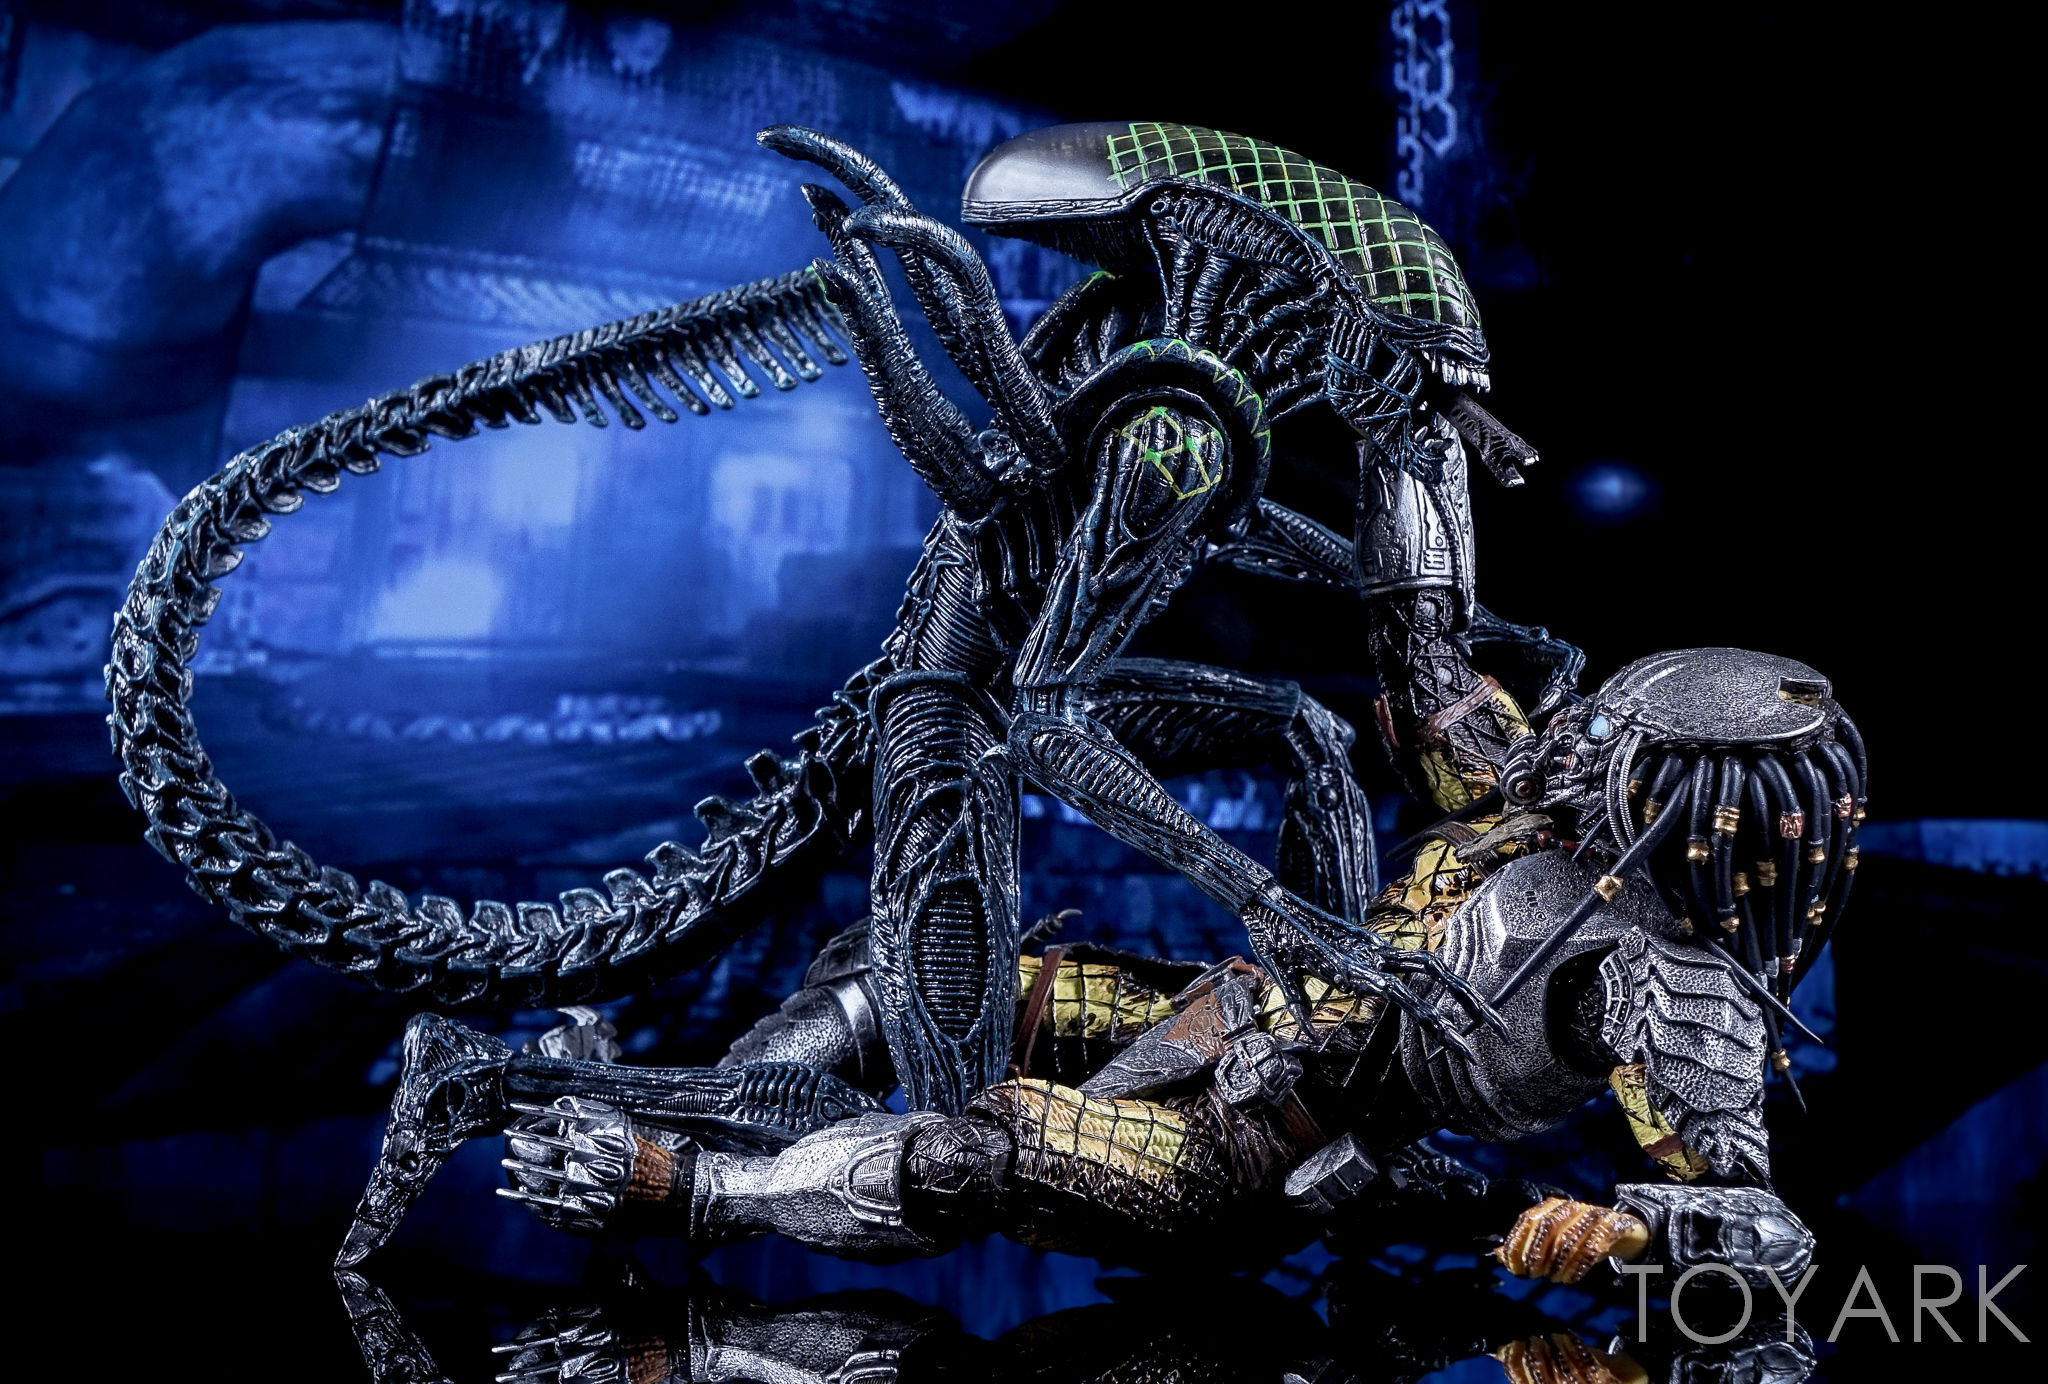 http://news.toyark.com/wp-content/uploads/sites/4/2016/10/NECA-AvP-Rivalry-Reborn-Set-067.jpg